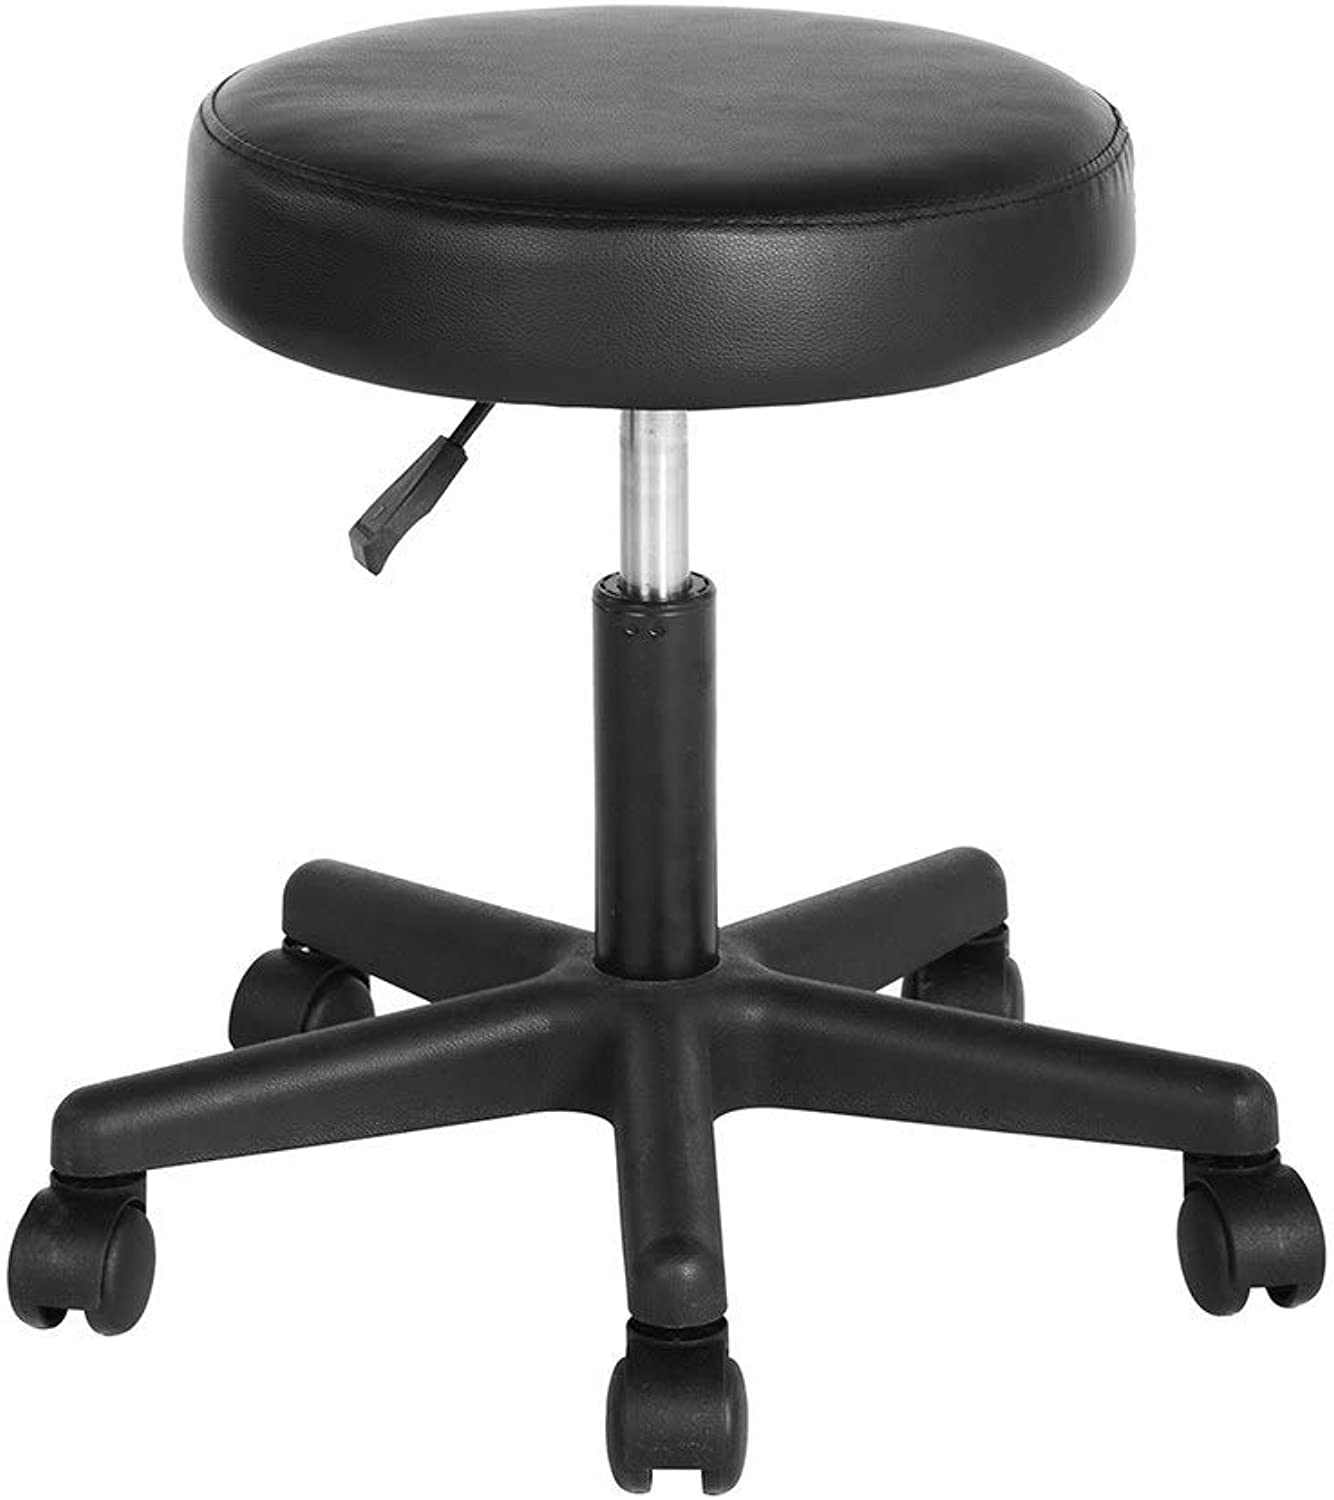 FurnitureR PU Leather Home Office Swivel Chair Desk Chair Computer Chair (Black)